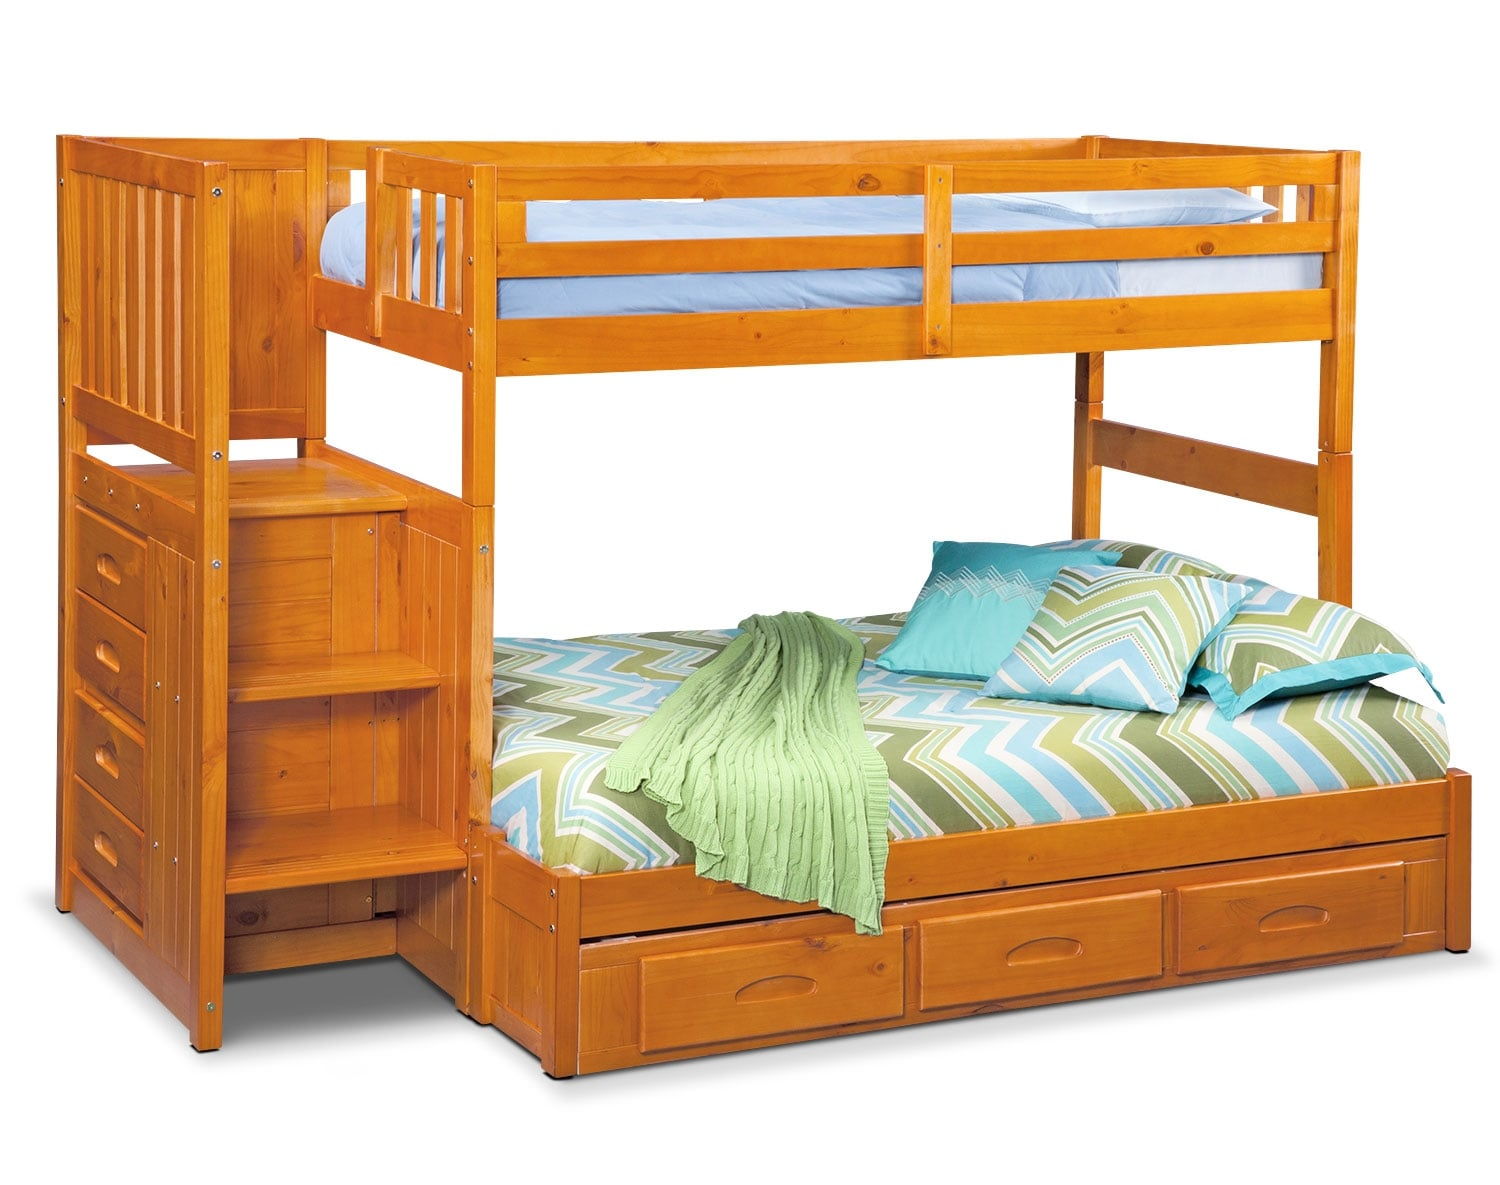 The Ranger Pine Bunk Bed Collection